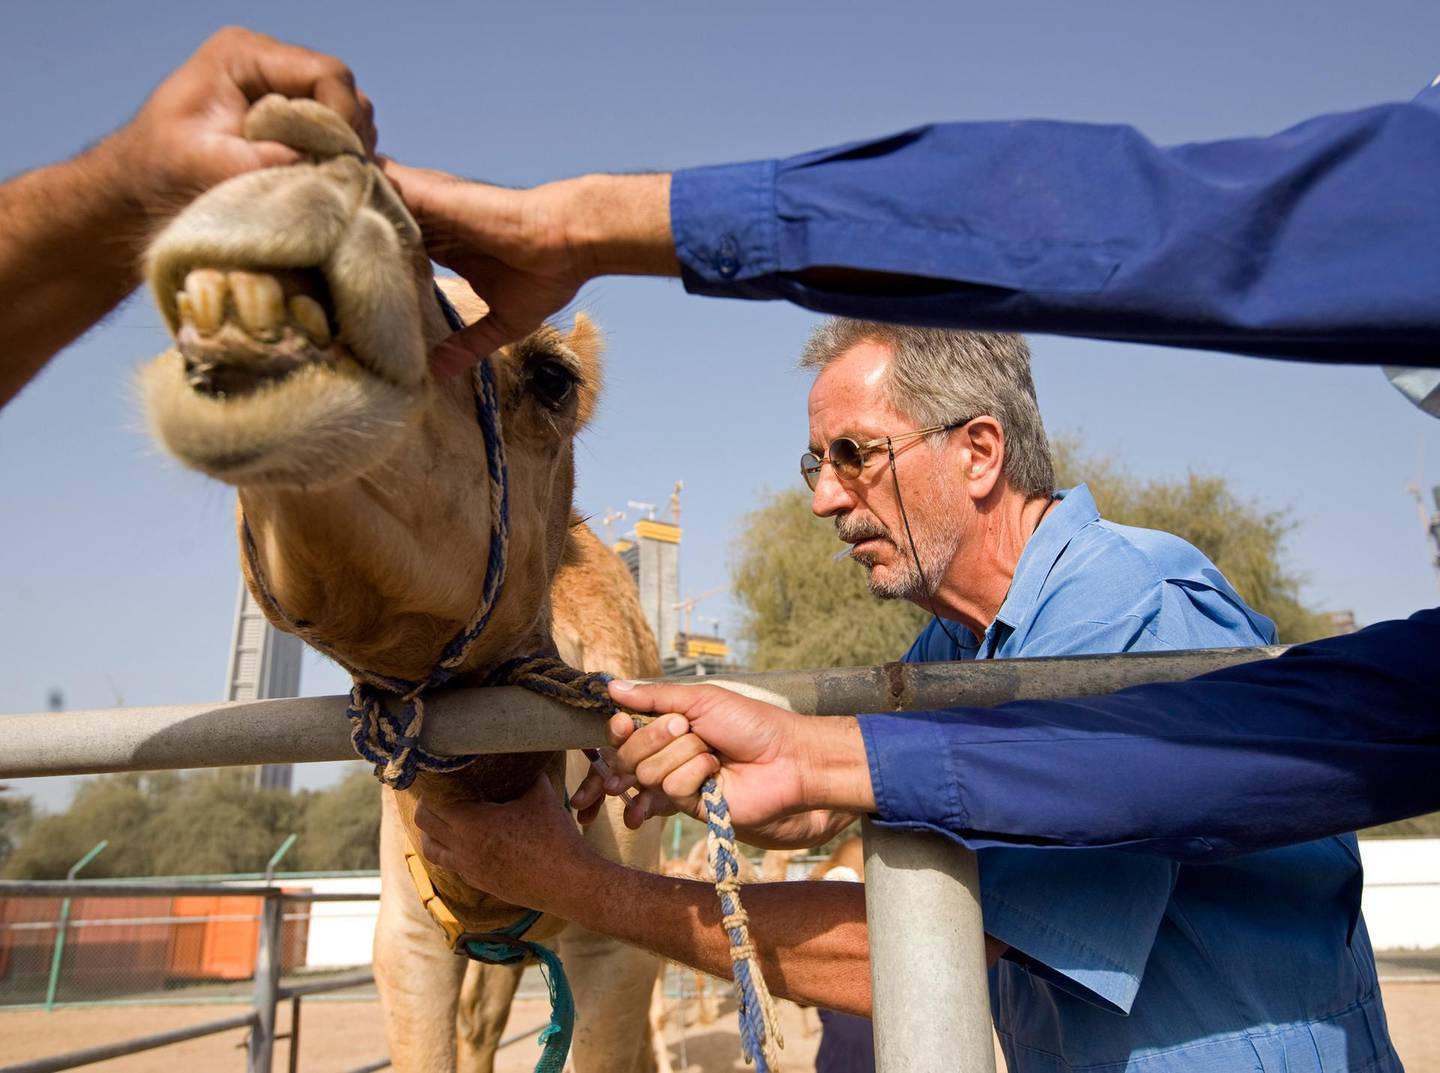 Dubai - March 23, 2010 - Scientific Director Dr. Ulrich Wernery gives camel 6A5 a shot of tranquilizer before blood is drawn from him at the Central Veterinary Research Laboratory in Dubai, March 23, 2010. (Photo by Jeff Topping/The National)